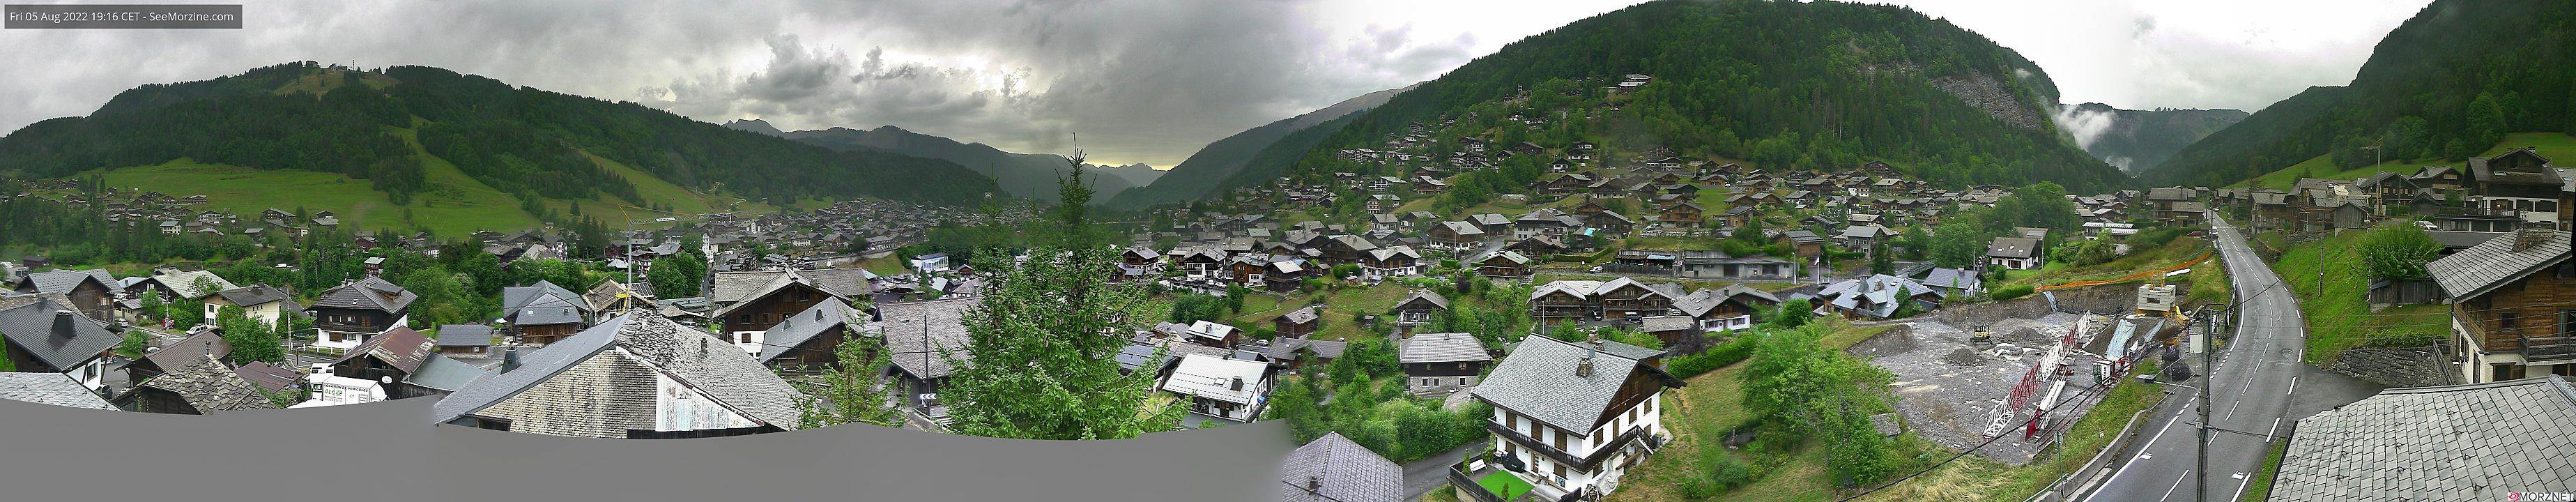 a panoramic view of Morzine